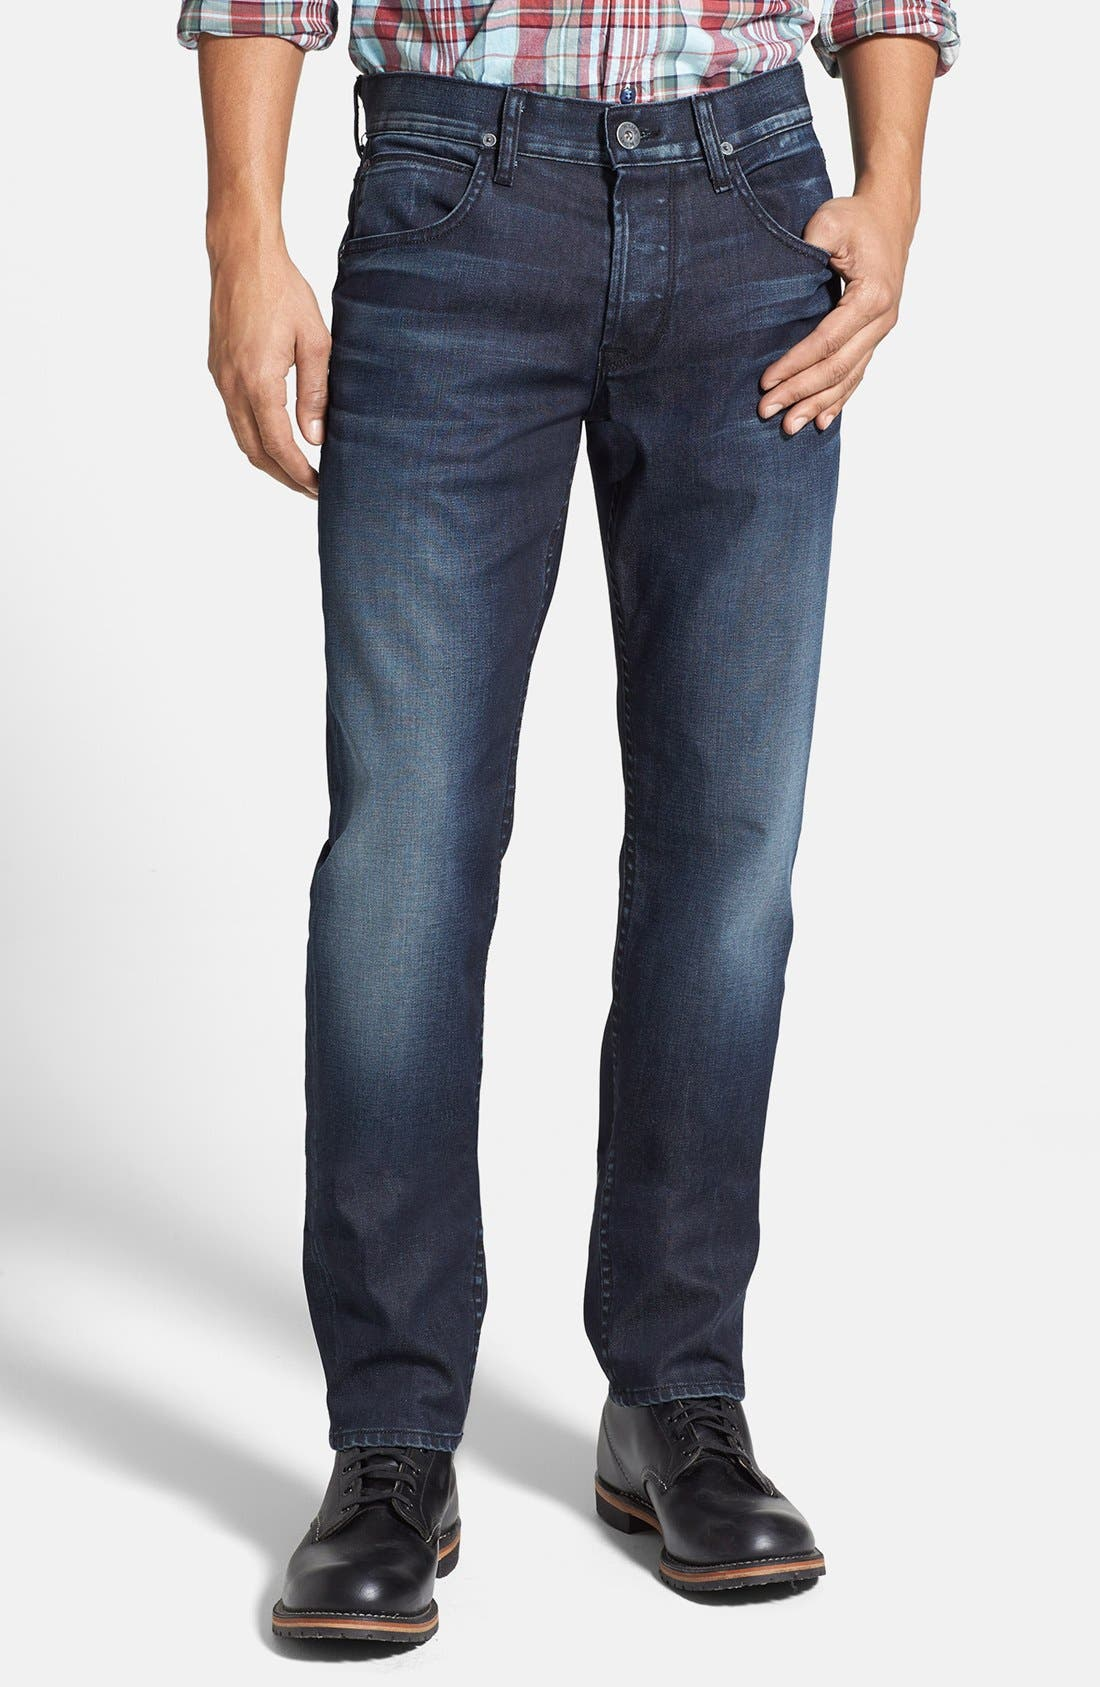 Alternate Image 1 Selected - Hudson Jeans 'Blake' Slim Straight Leg Jeans (Darkness)